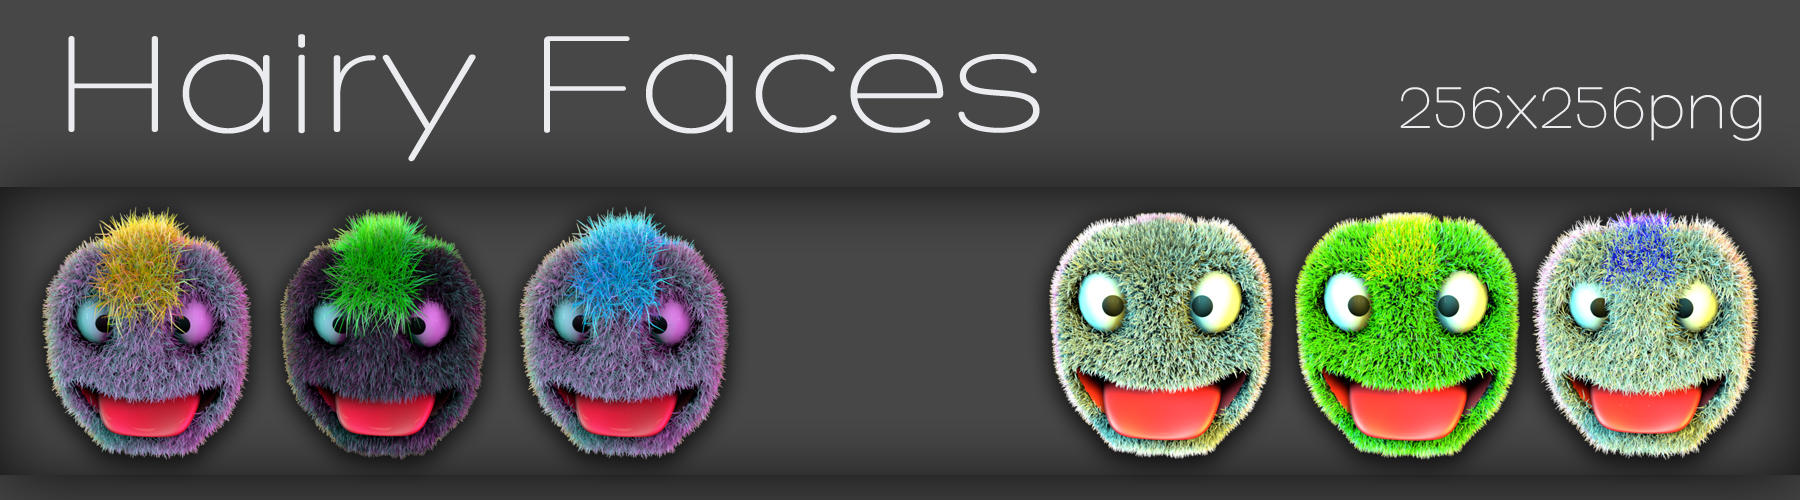 hairy faces by xylomon